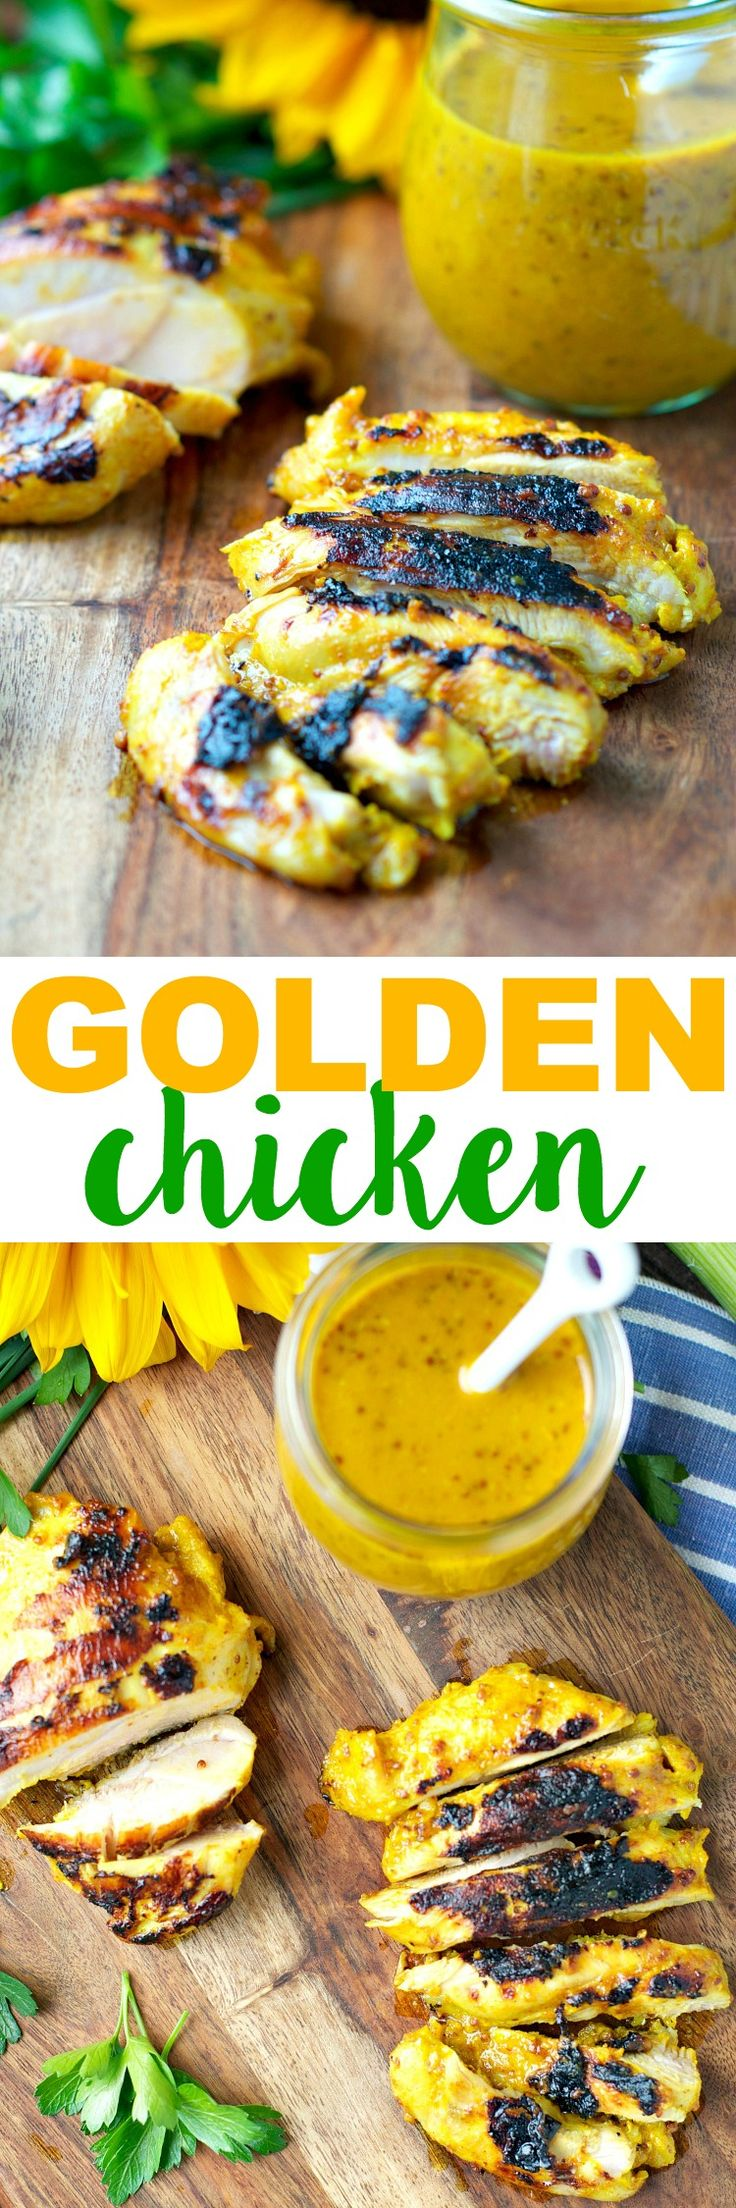 This light and crispy Golden Chicken is marinated in a honey dijon sauce and seasoned with just the right amount of turmeric for a healthy, flavor-packed dinner that's ready in only 20 minutes!